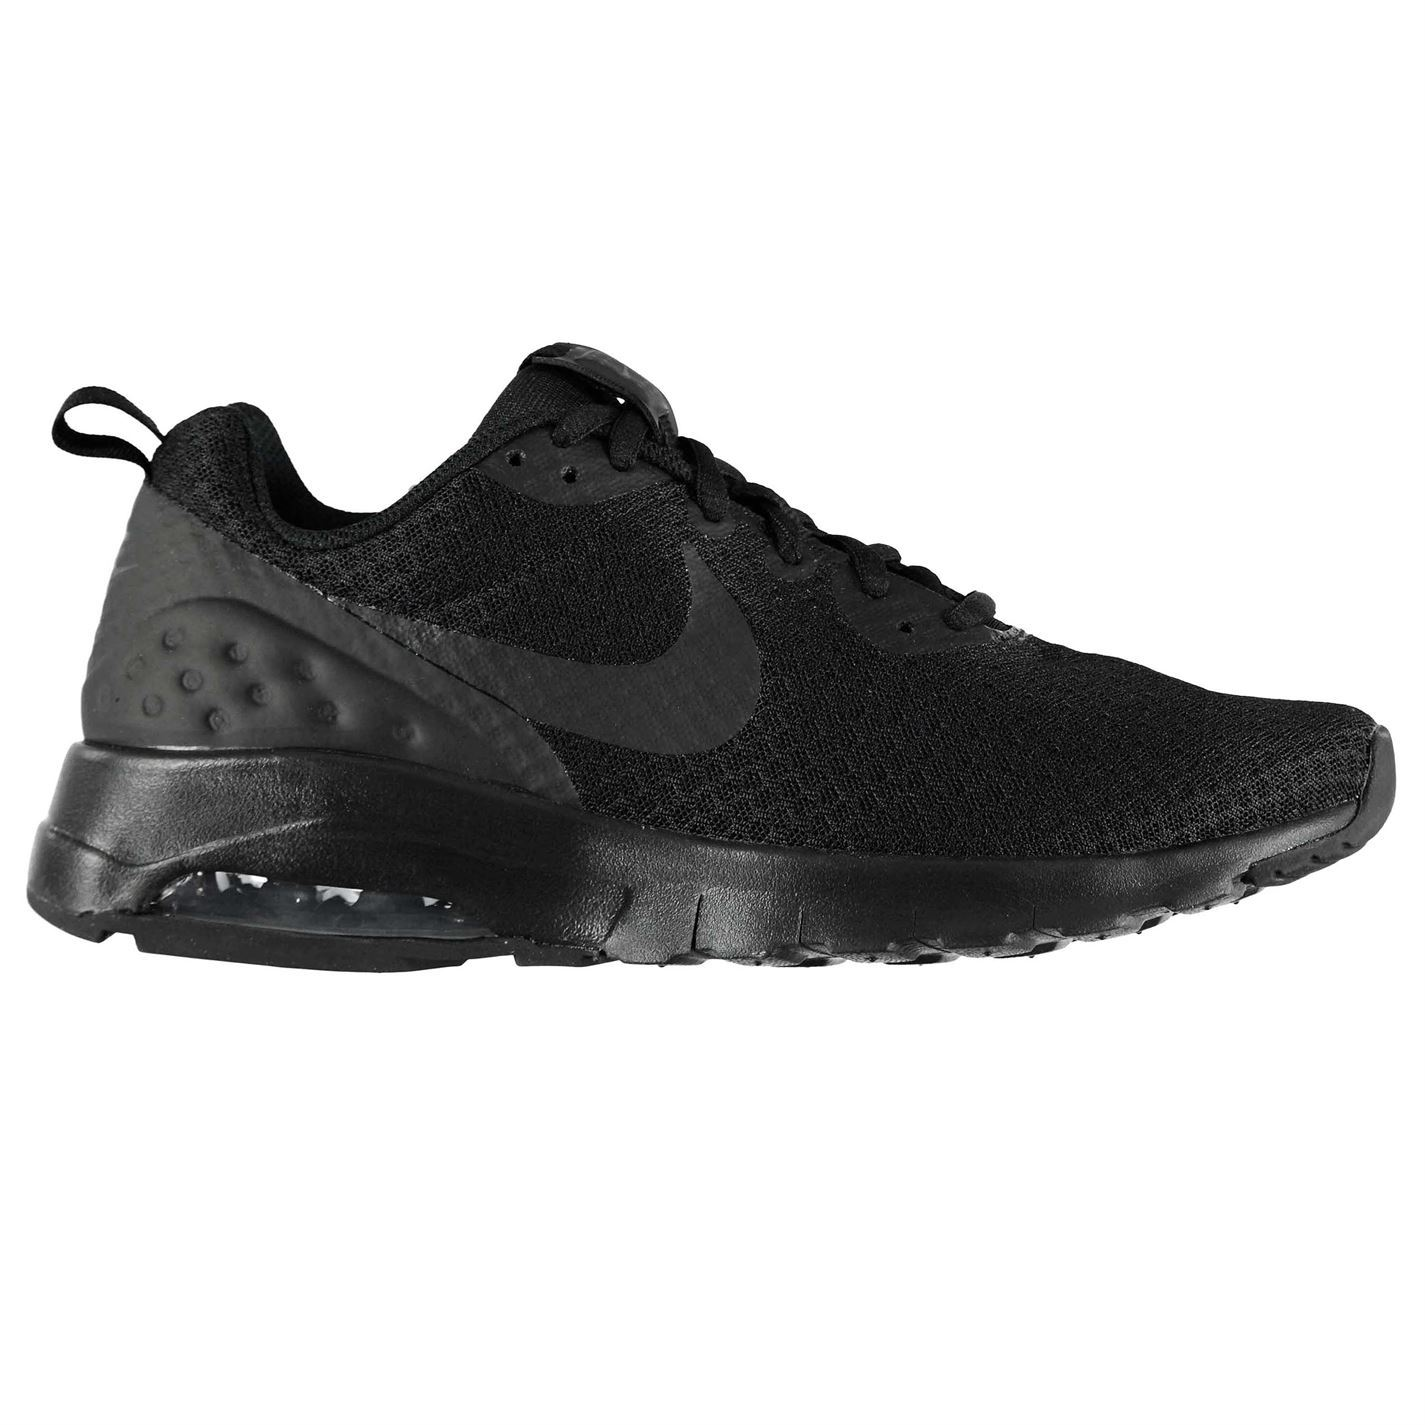 ... inexpensive nike air max motion running shoes mens black jogging  trainers sneakers 2fa38 9a430 59962a786